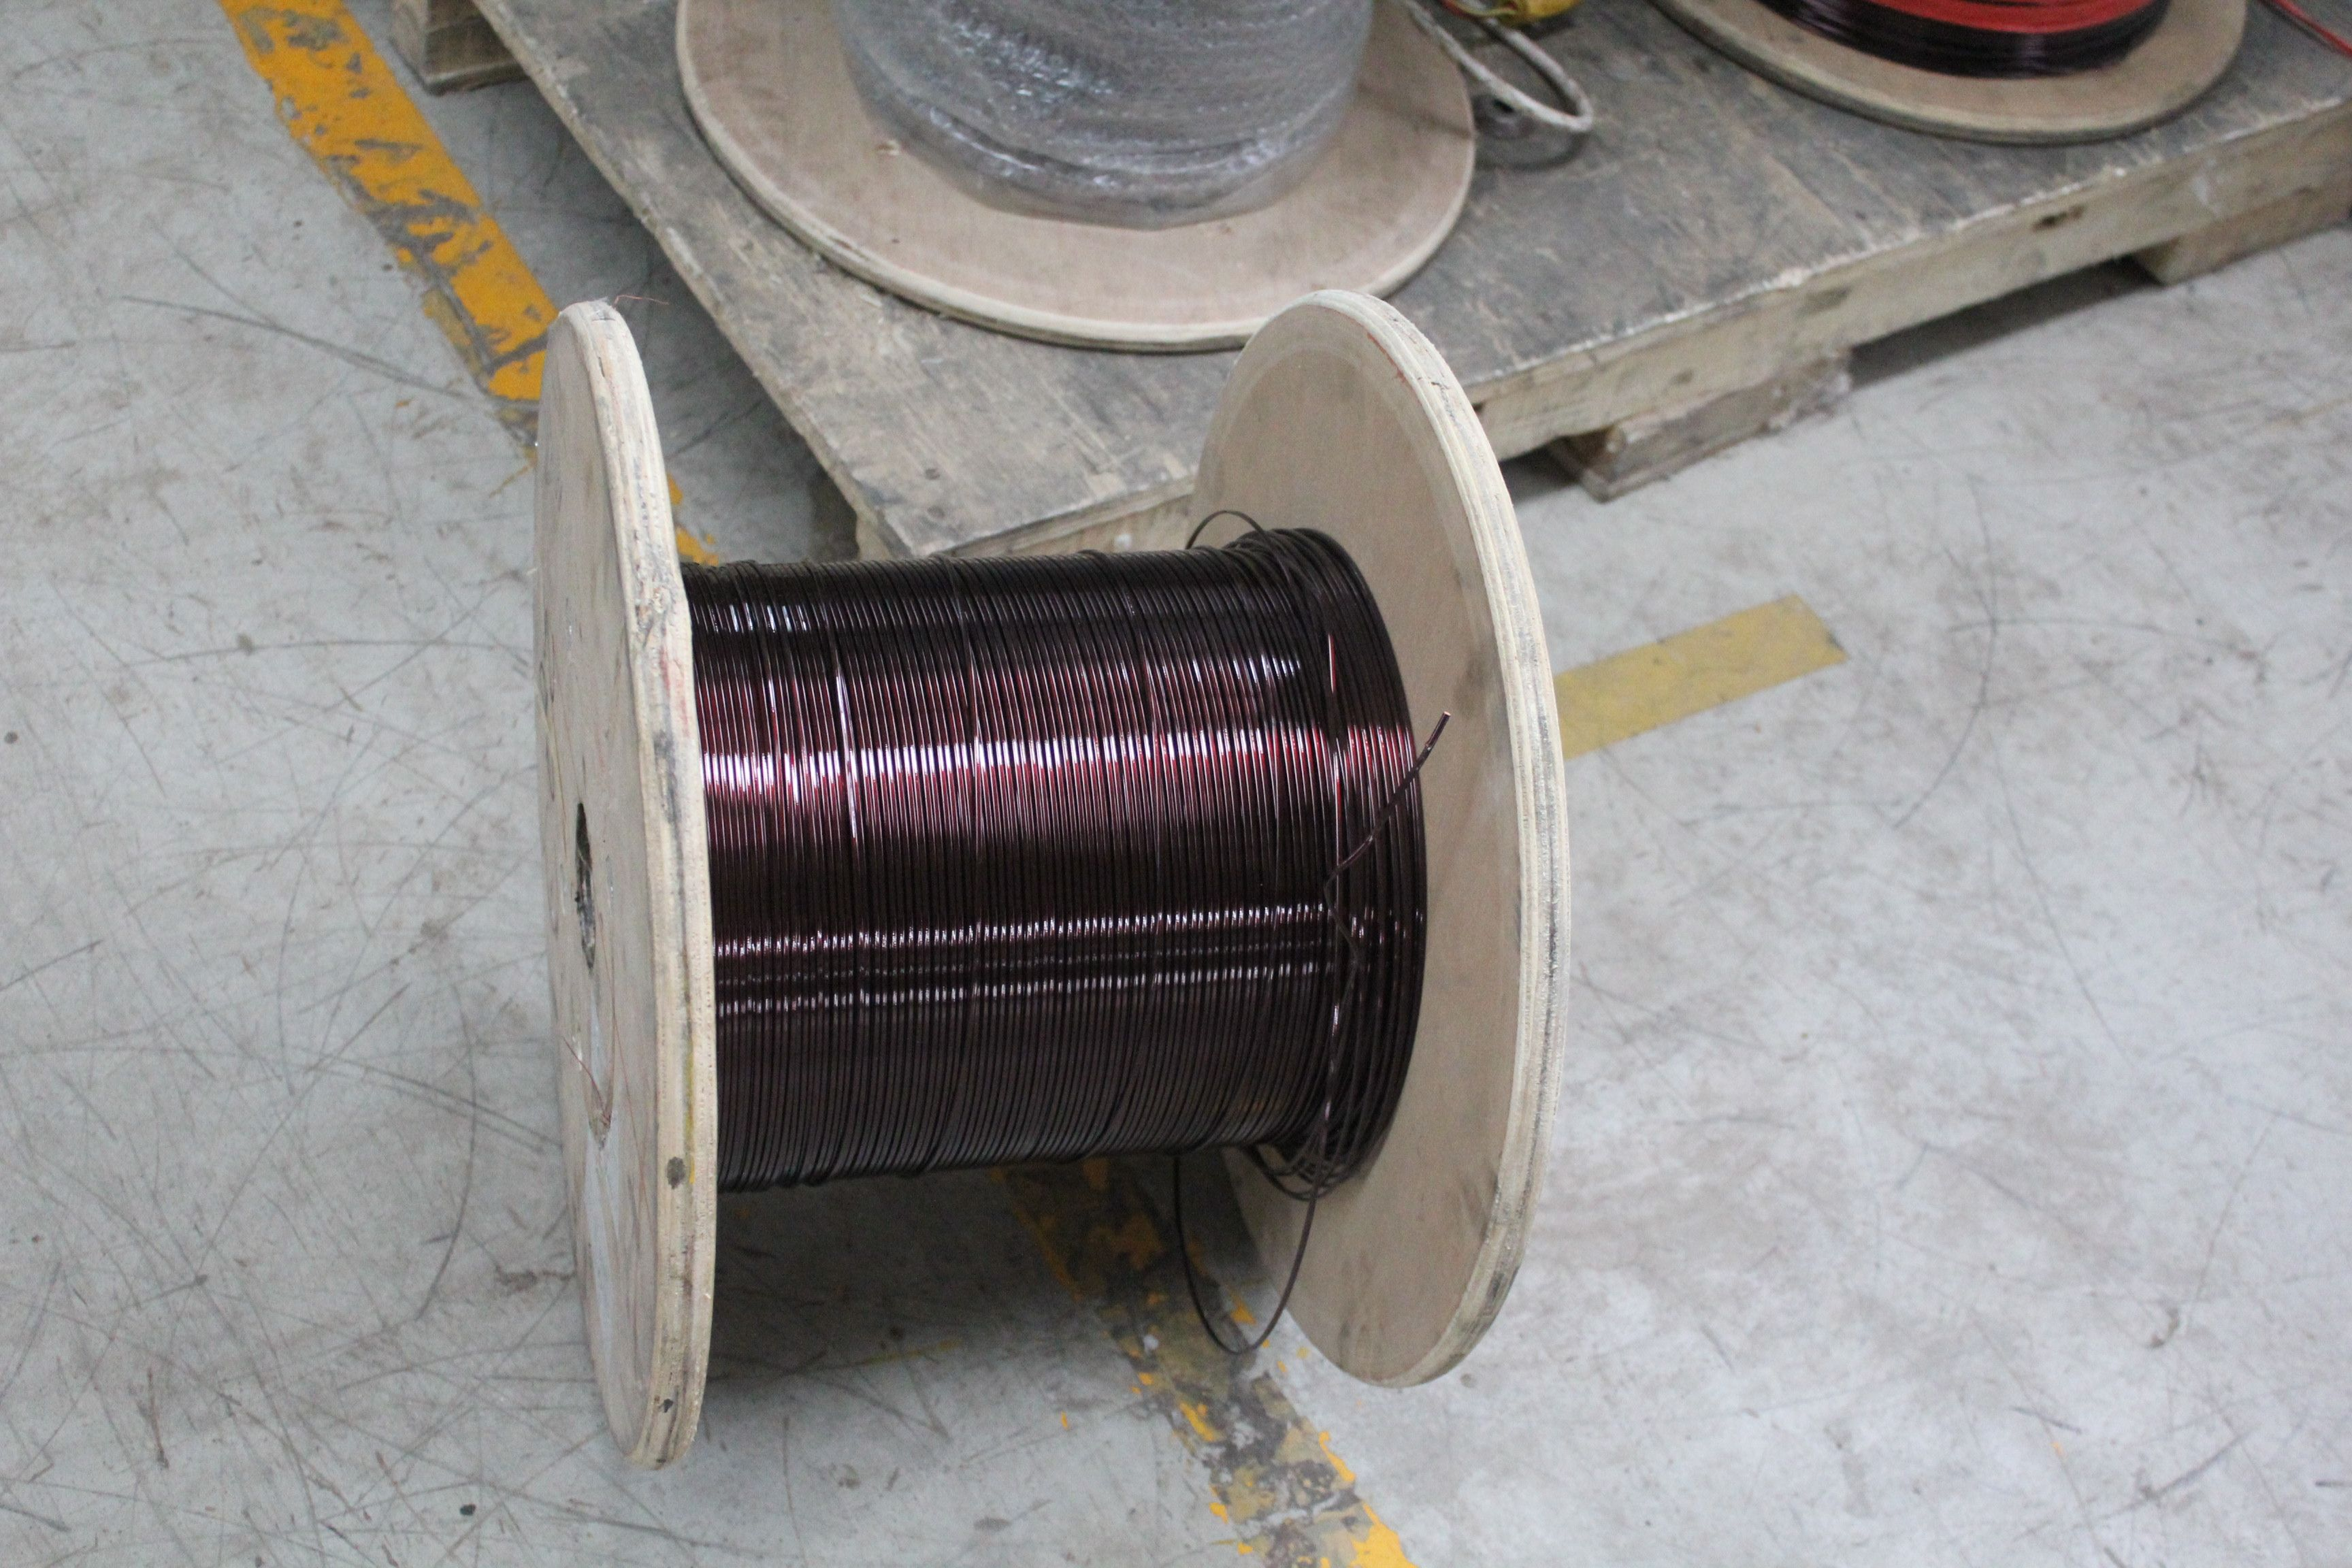 medium resolution of enameled aluminum wire s flame retardant level is b so it has good better shielding effectiveness and high mechanical property